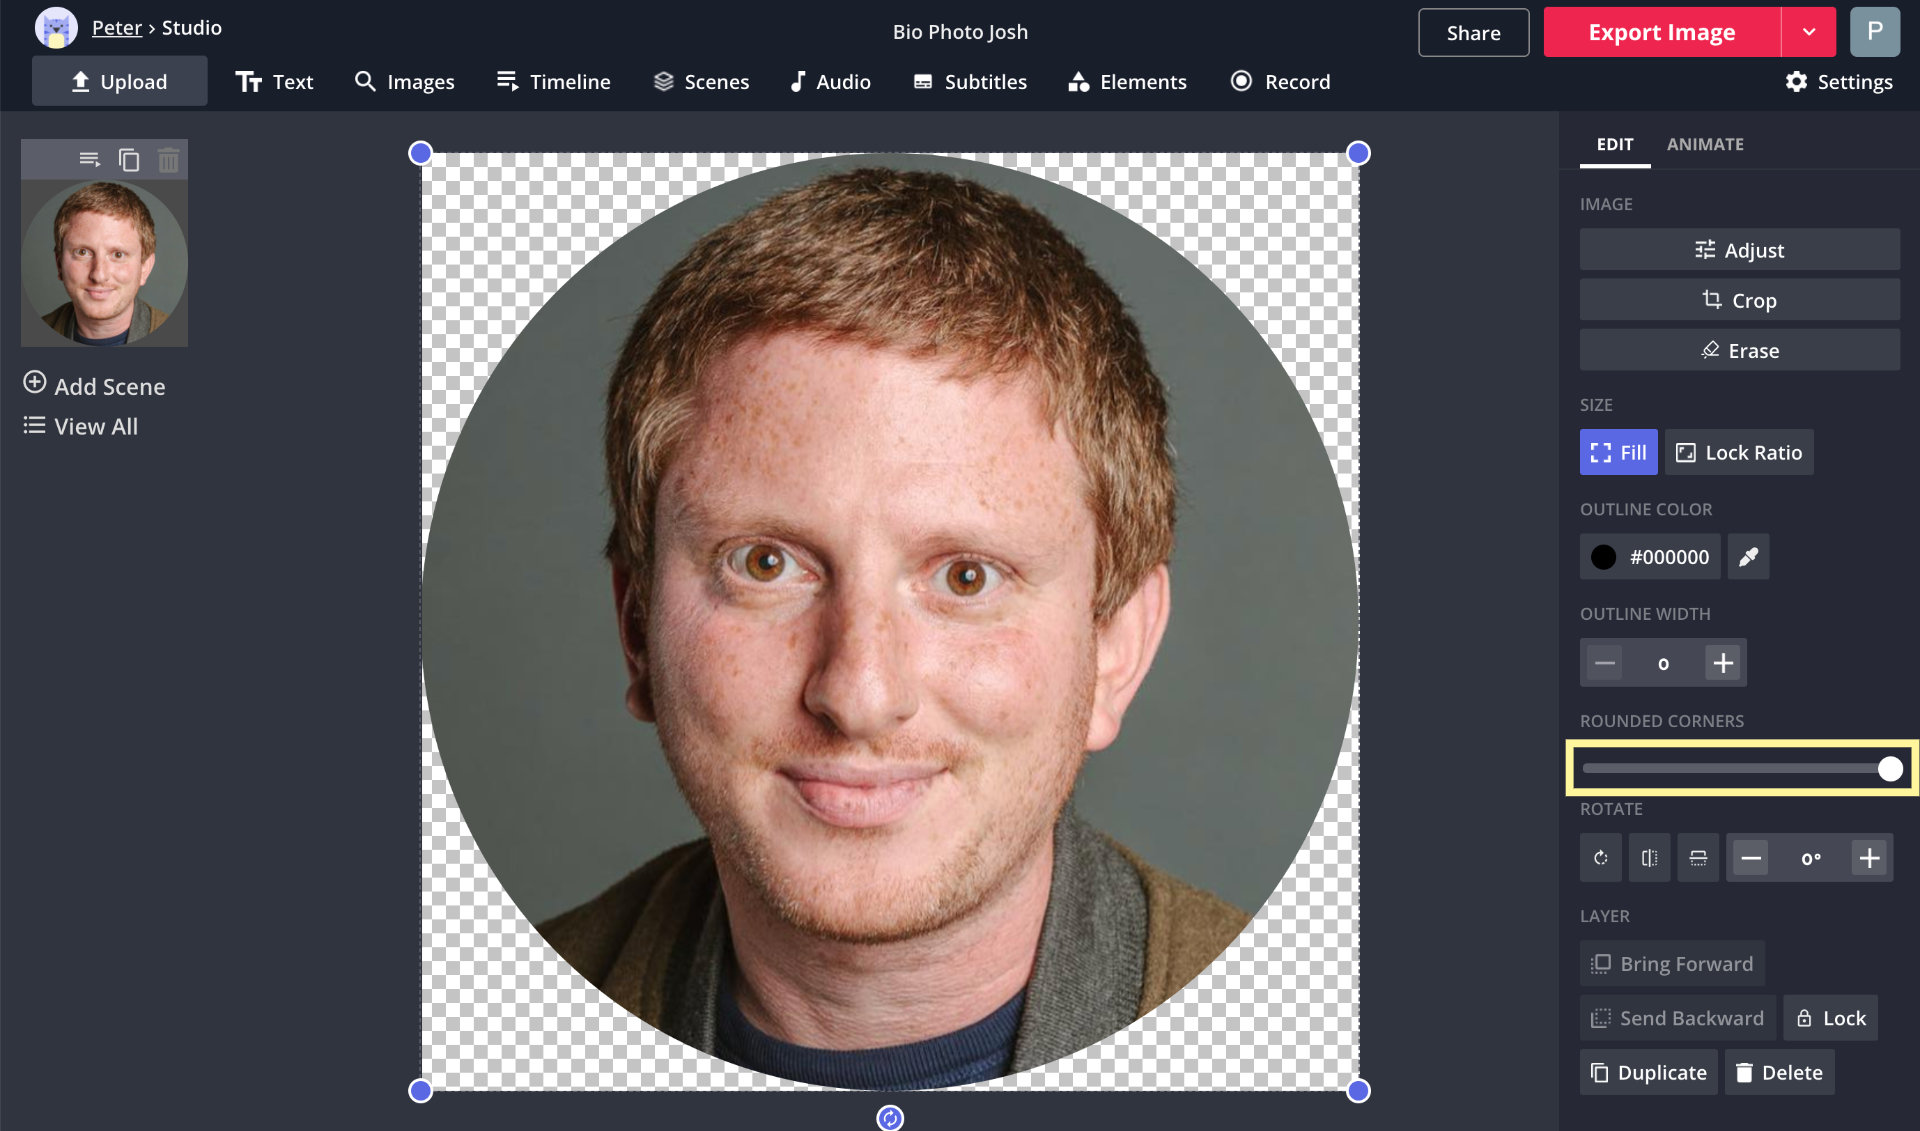 A screenshot of a bio photo being cropped to a circle in the Kapwing Studio.